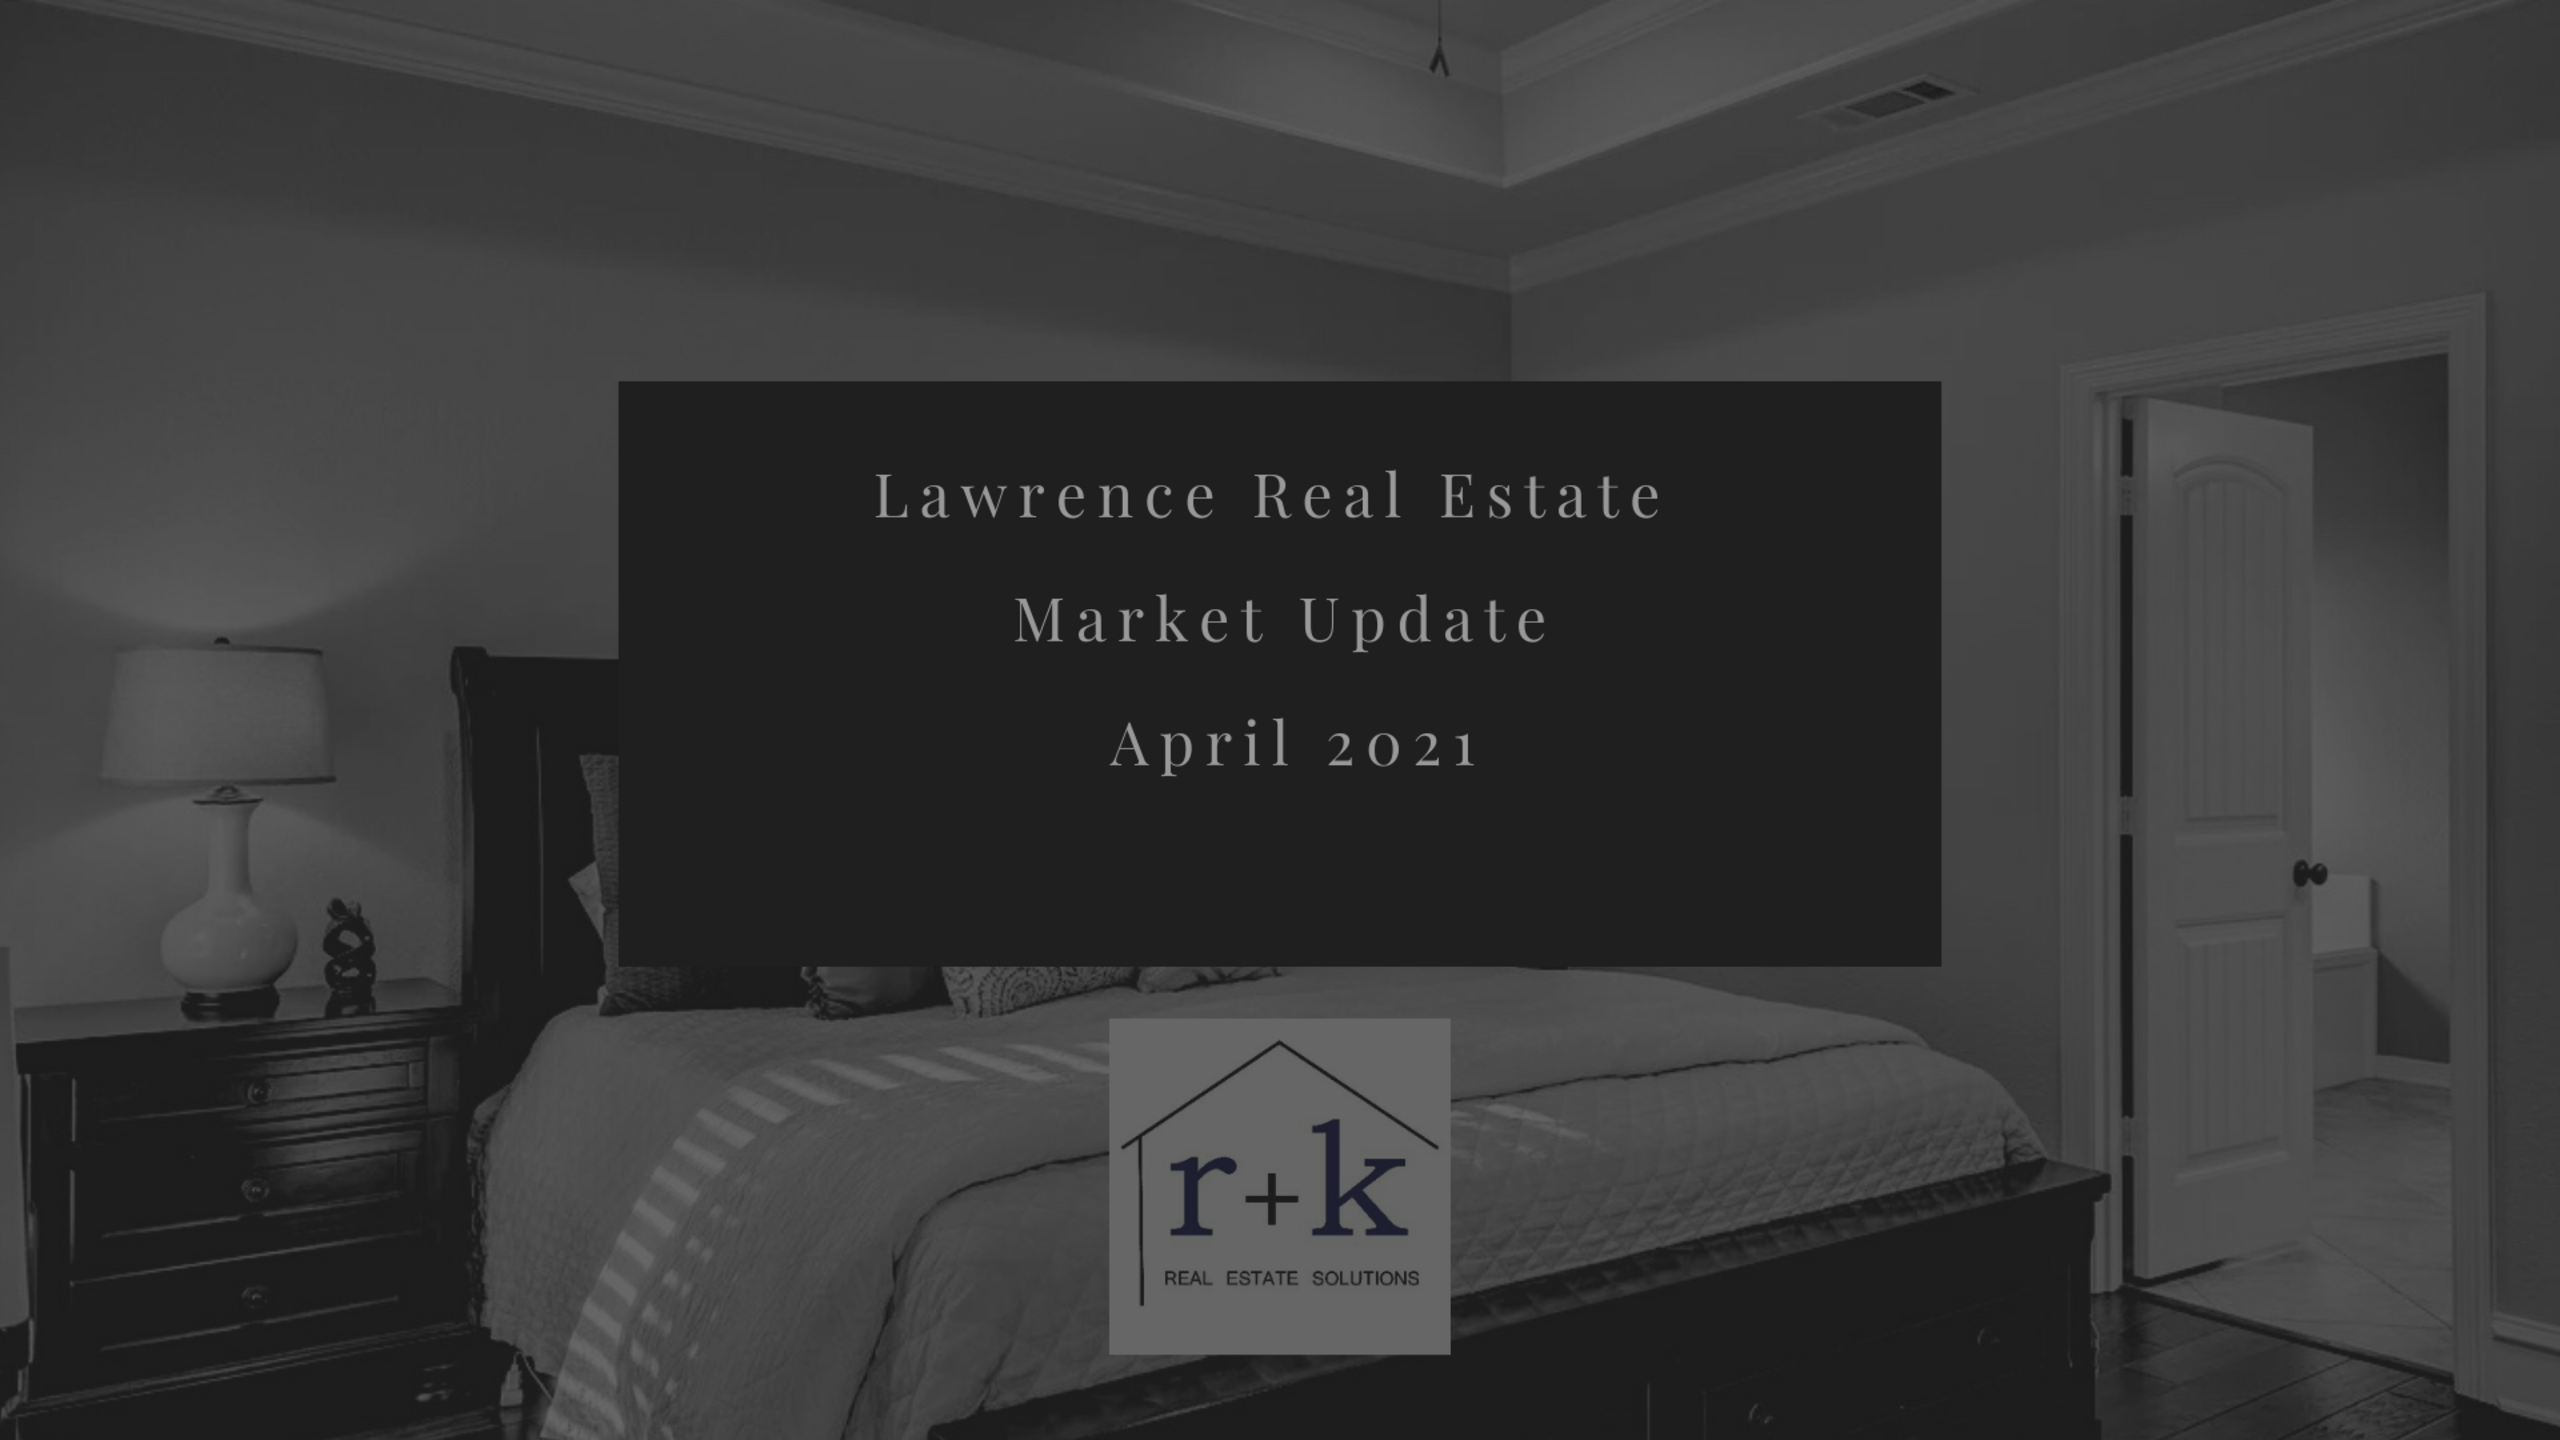 Lawrence Real Estate Market Update April 2021